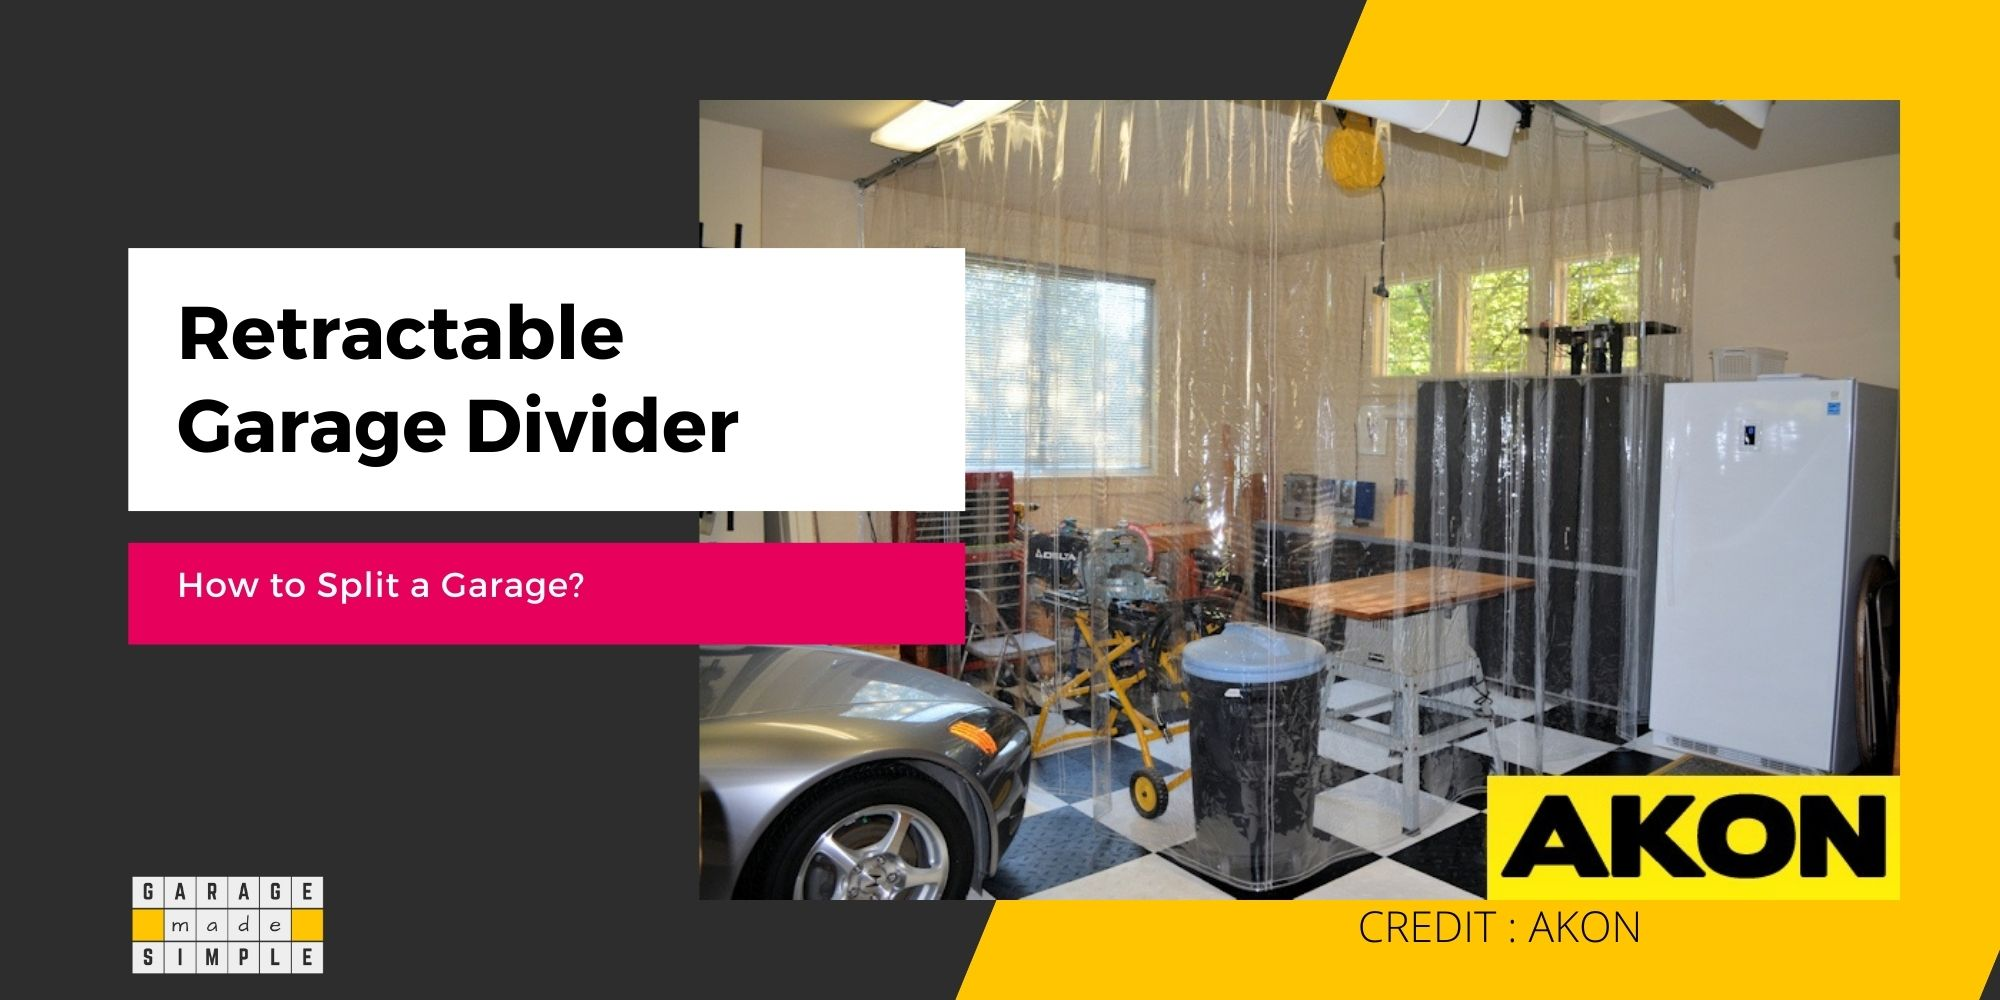 Retractable Garage Divider (How To Make It Work For You)